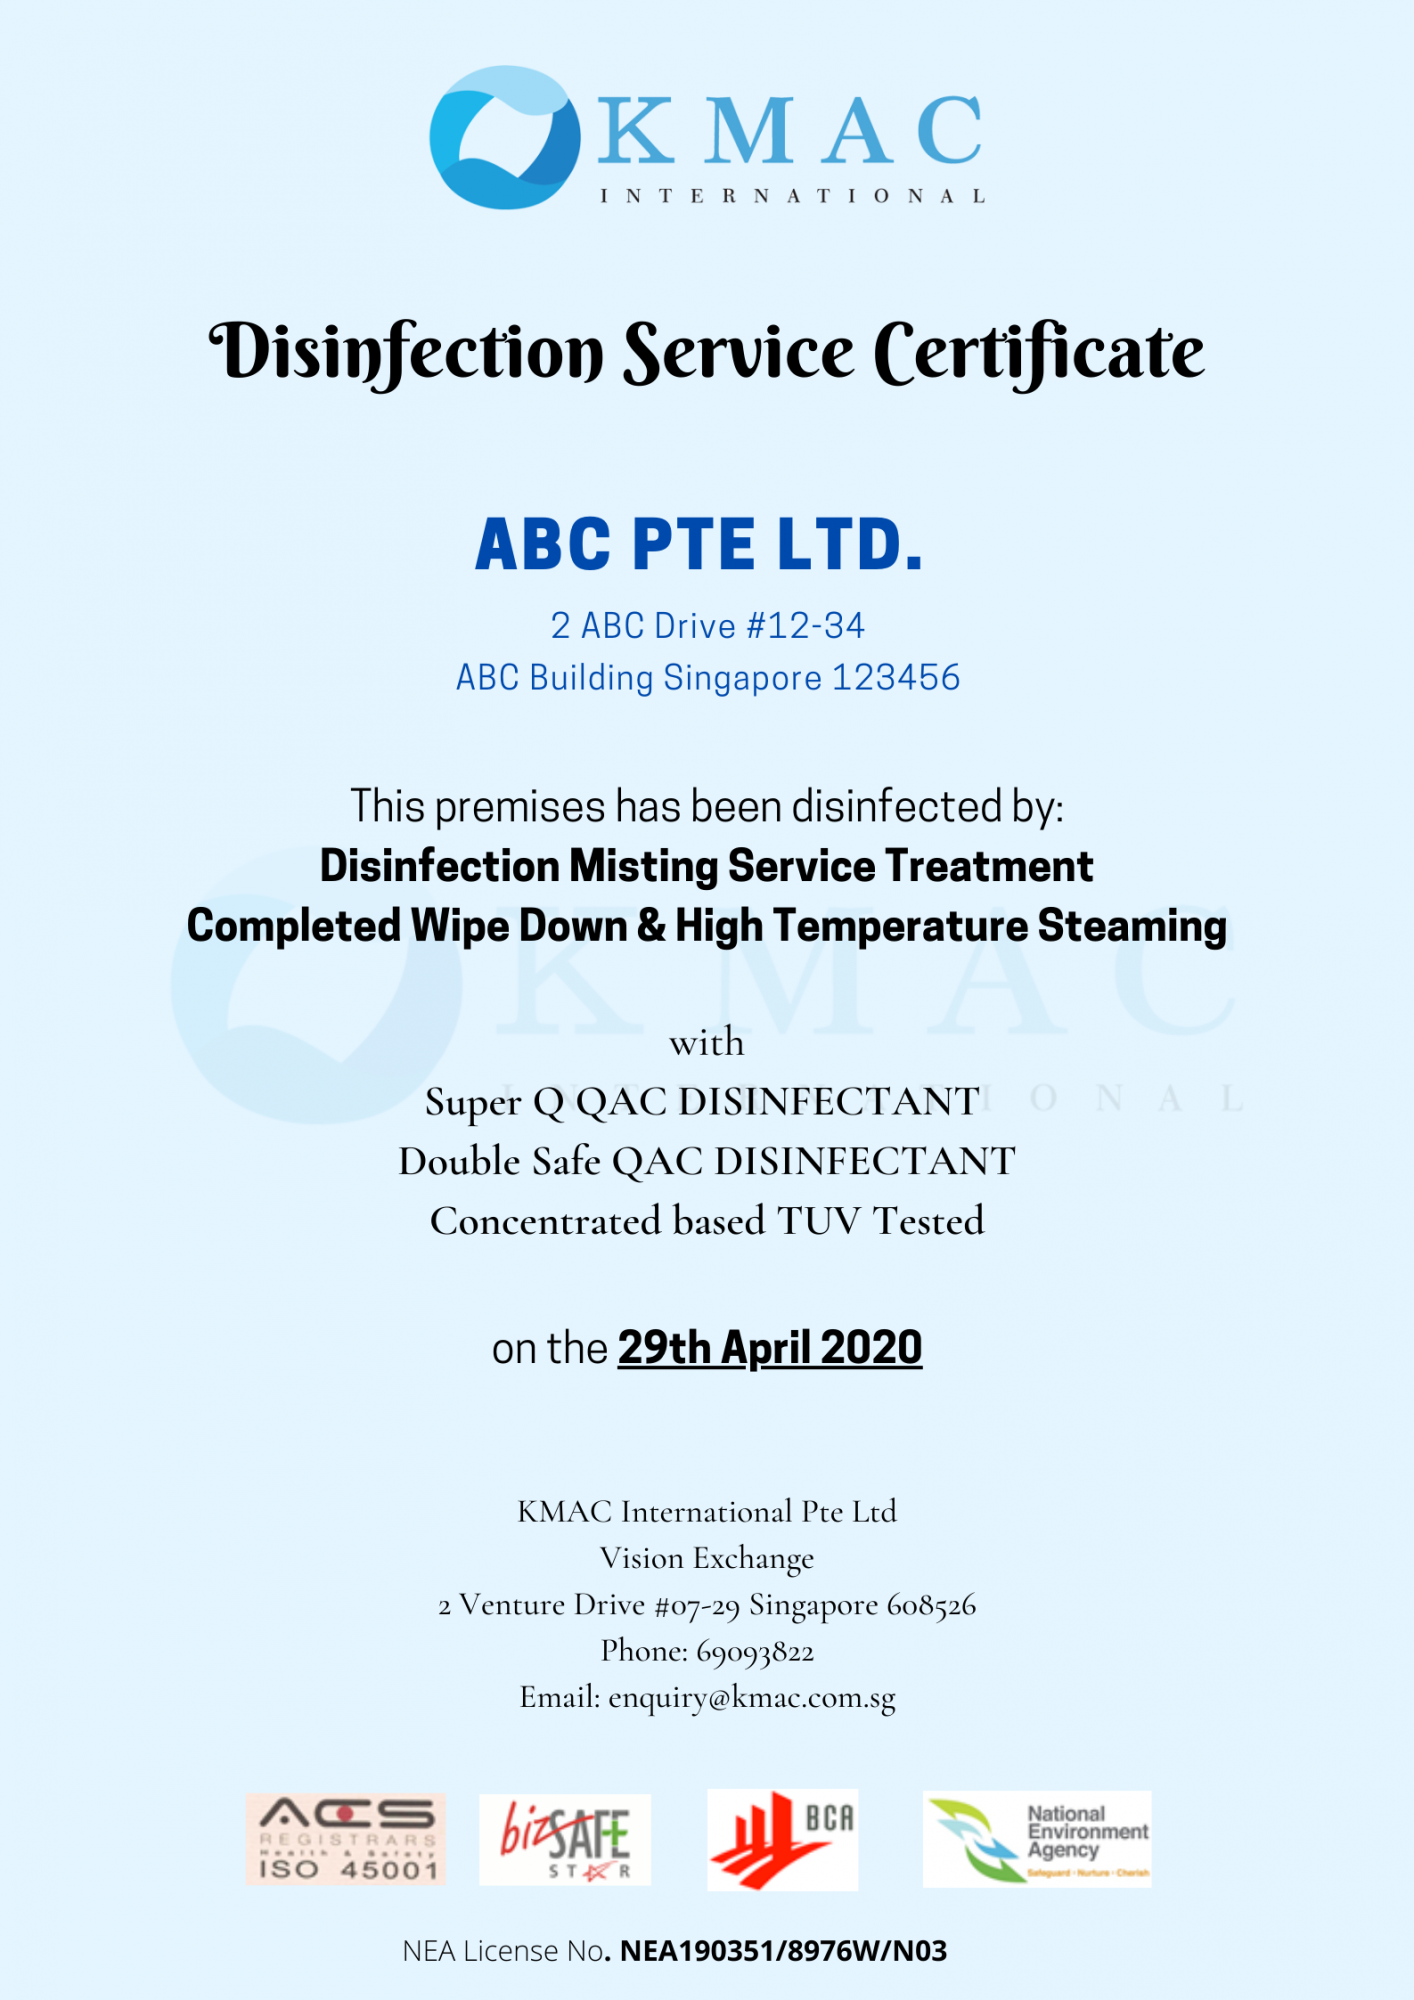 https://kmac.com.sg/wp-content/uploads/2020/06/Disinfection-Service-Certificate-1-1414x2000.png